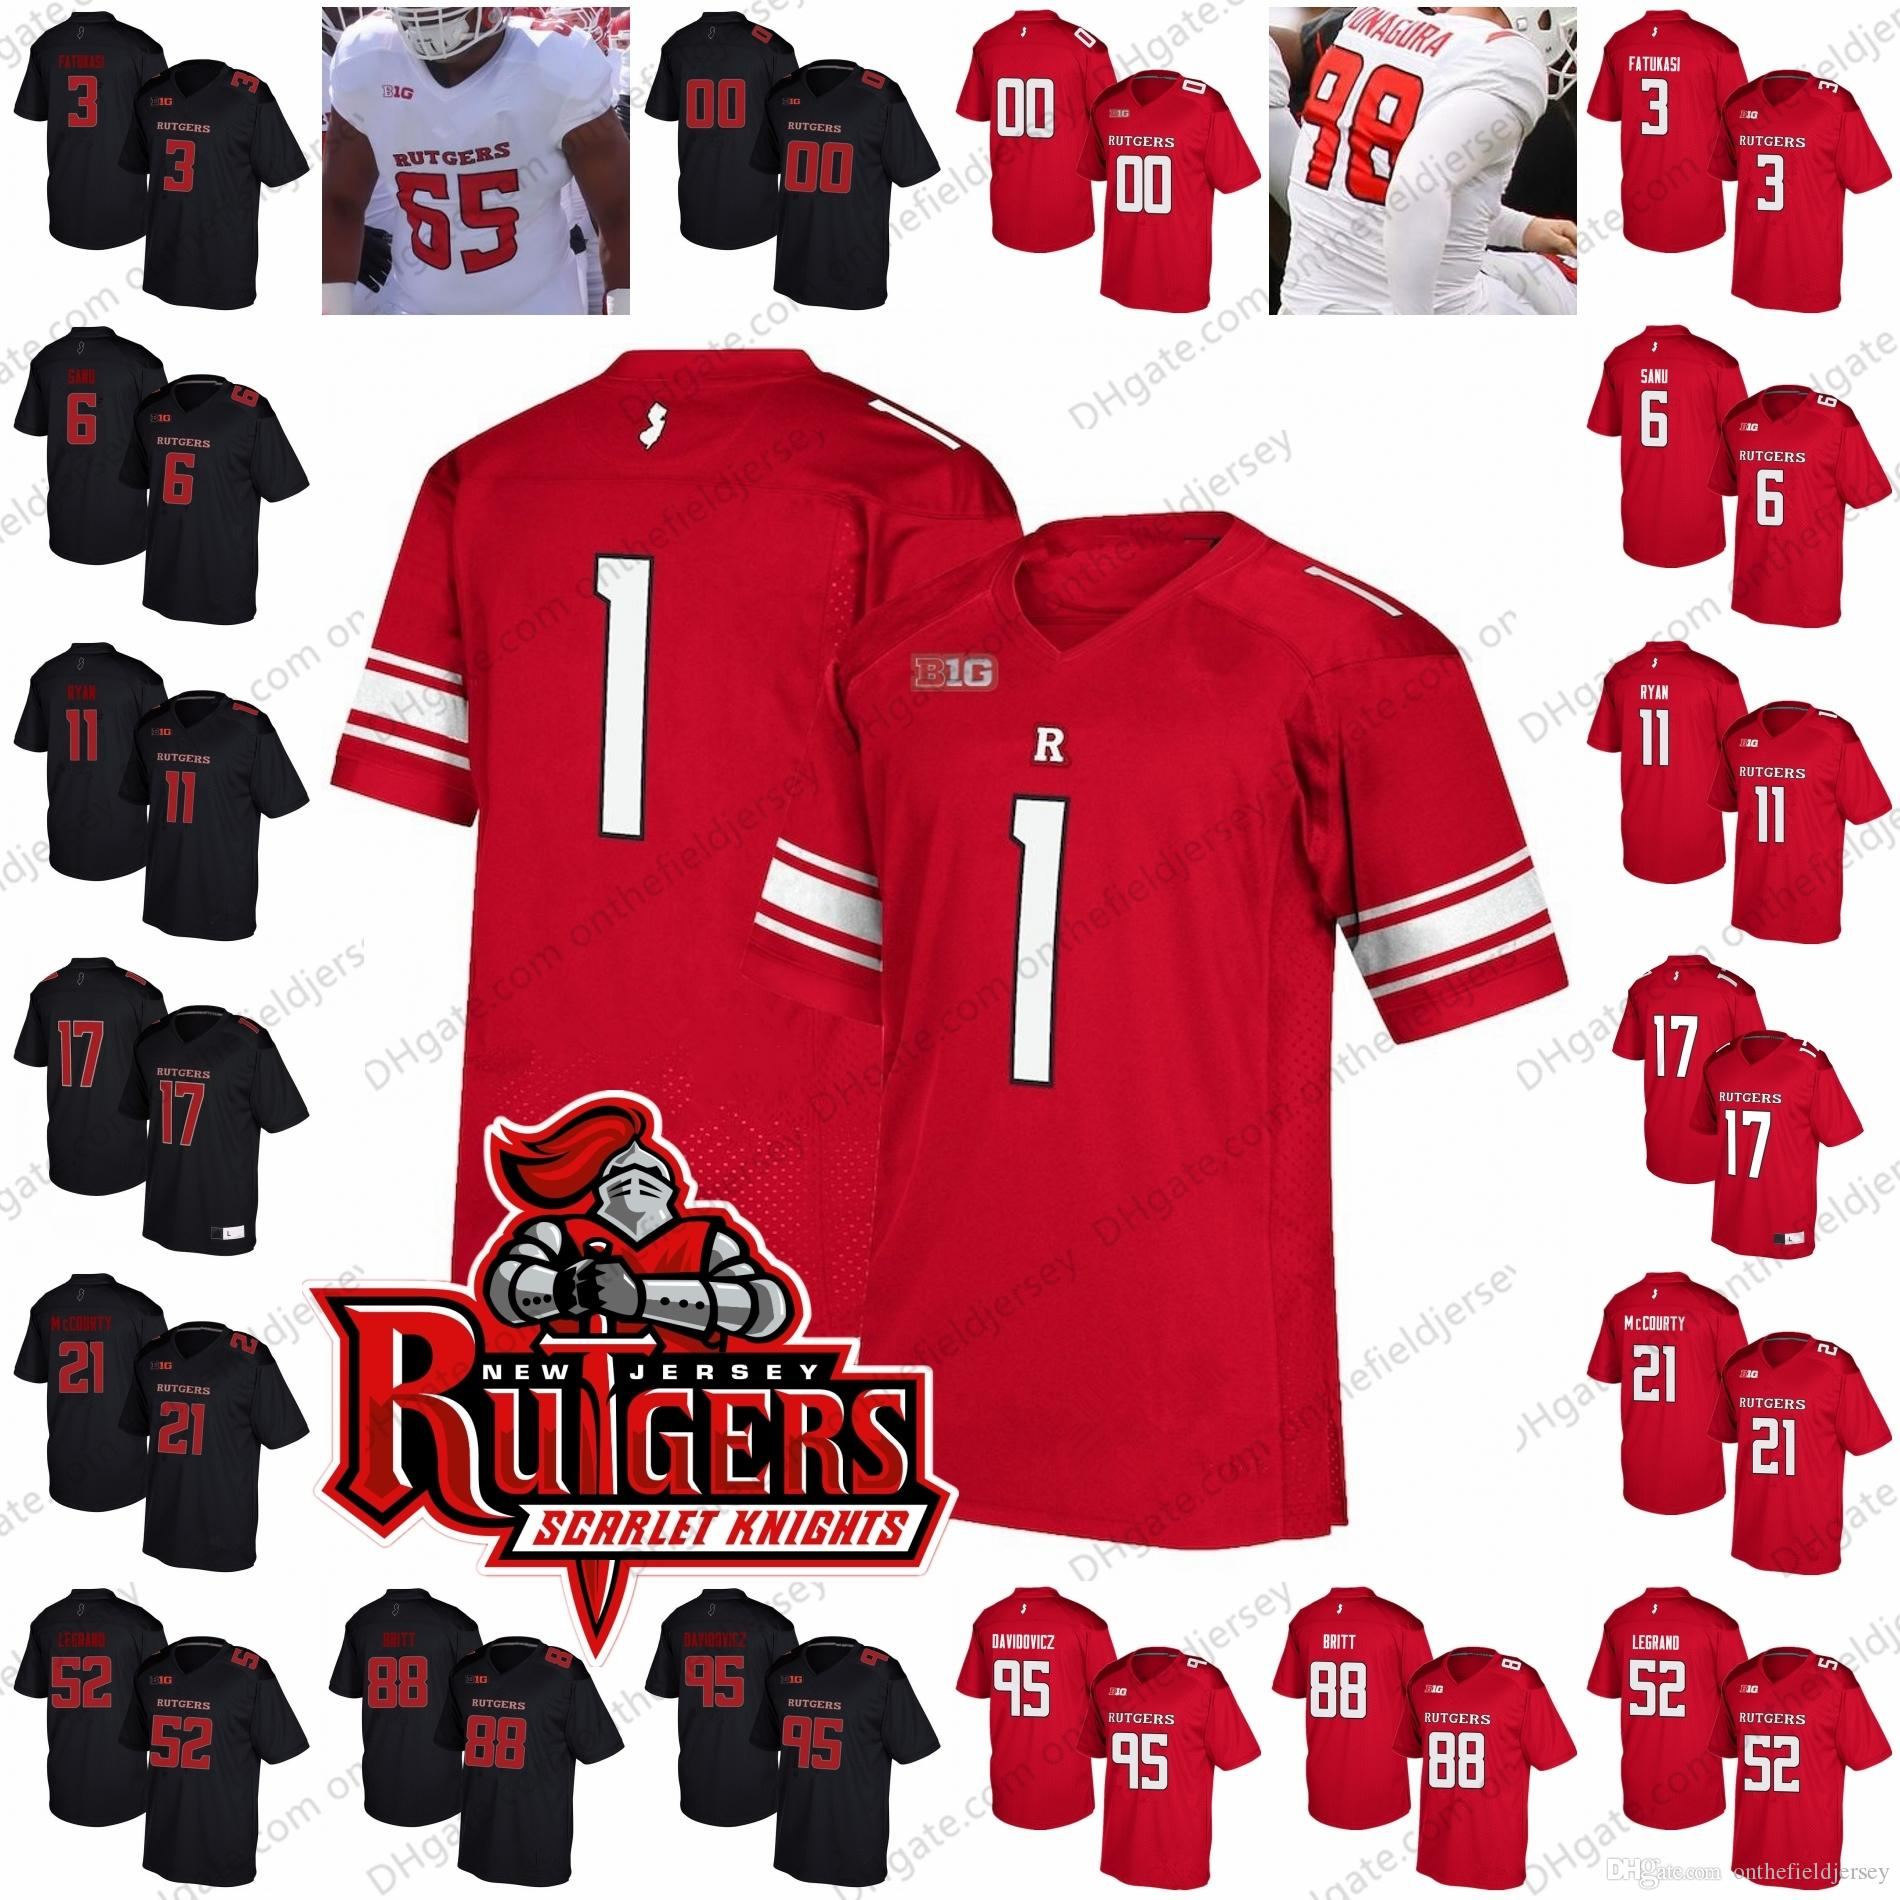 2019 Custom Rutgers Scarlet Knights College Football Jersey Any Name Number   3 Jalen Chatman 11 Logan Ryan 27 Ray Rice 95 Justin Davidovicz S 4XL From  ... 199b173af